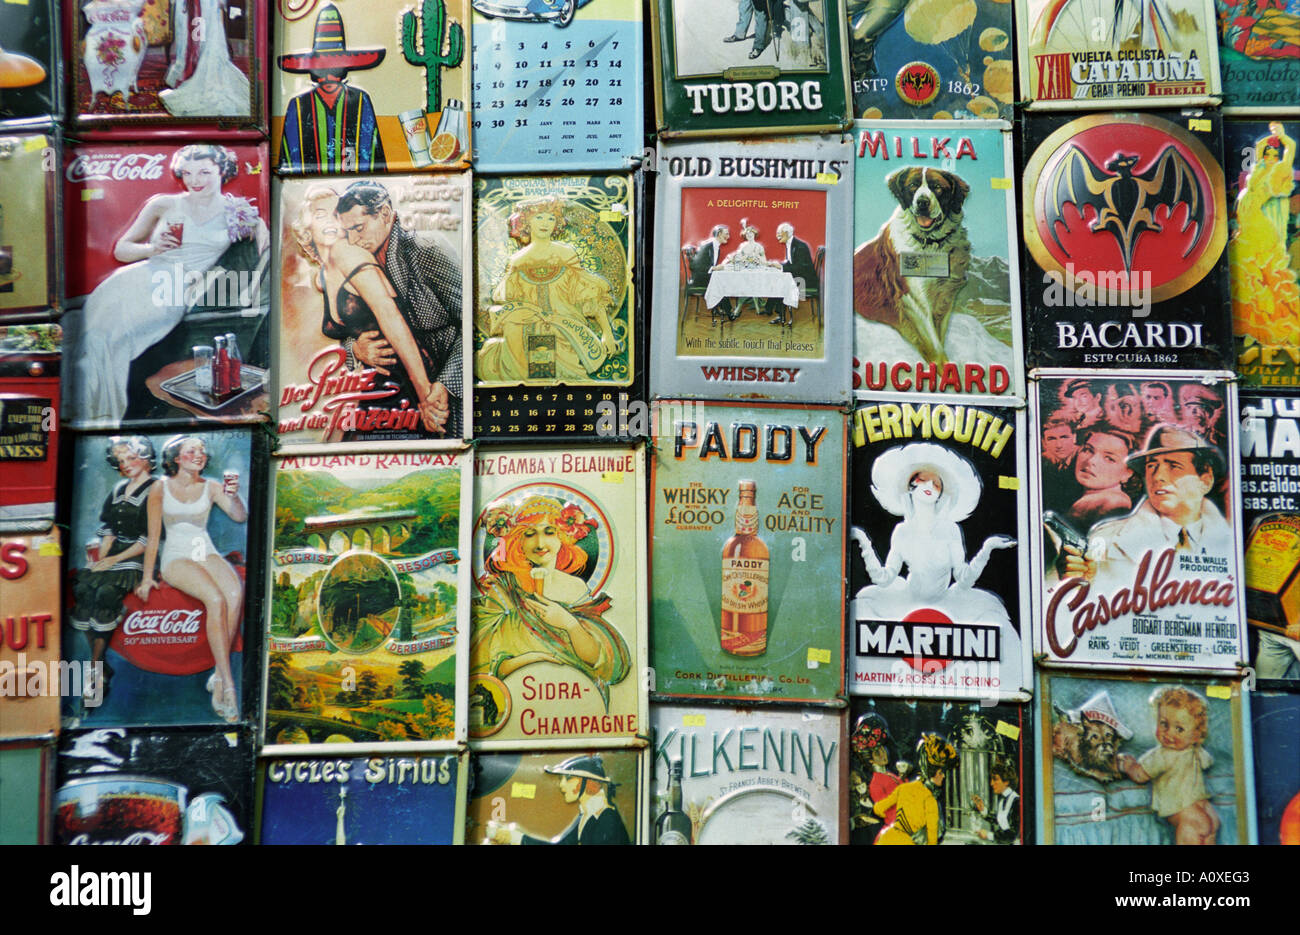 London, UK. Portobello market. Vintage advertising signs and posters - Stock Image